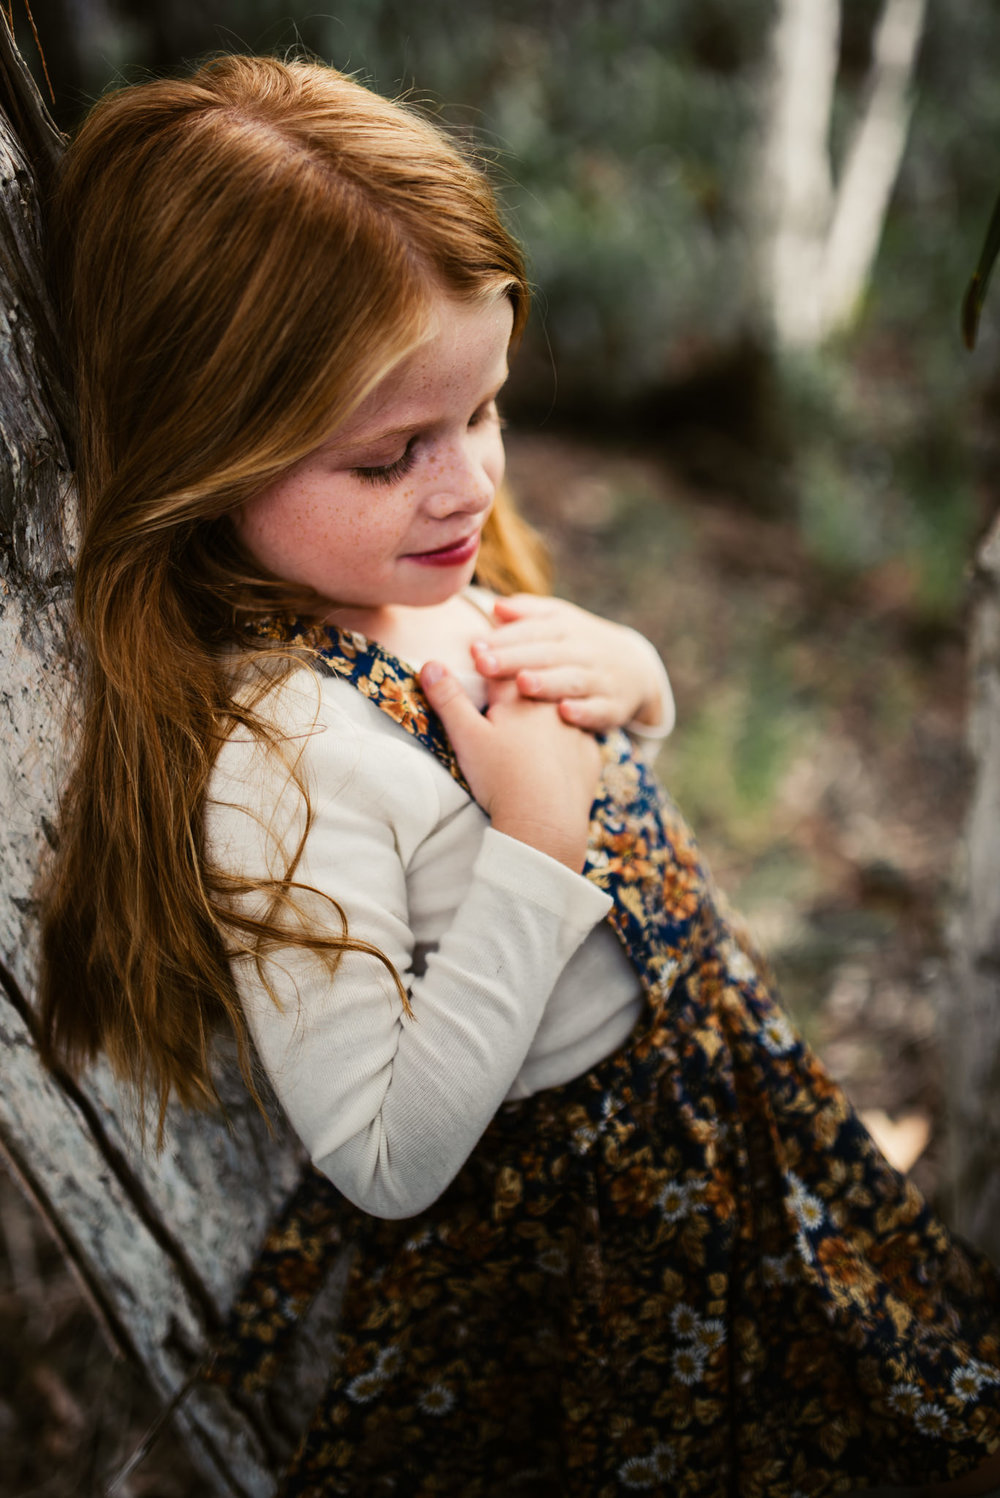 twyla jones photography - treasure coast florida - childrens adventure clothing commercial shoot--4.jpg